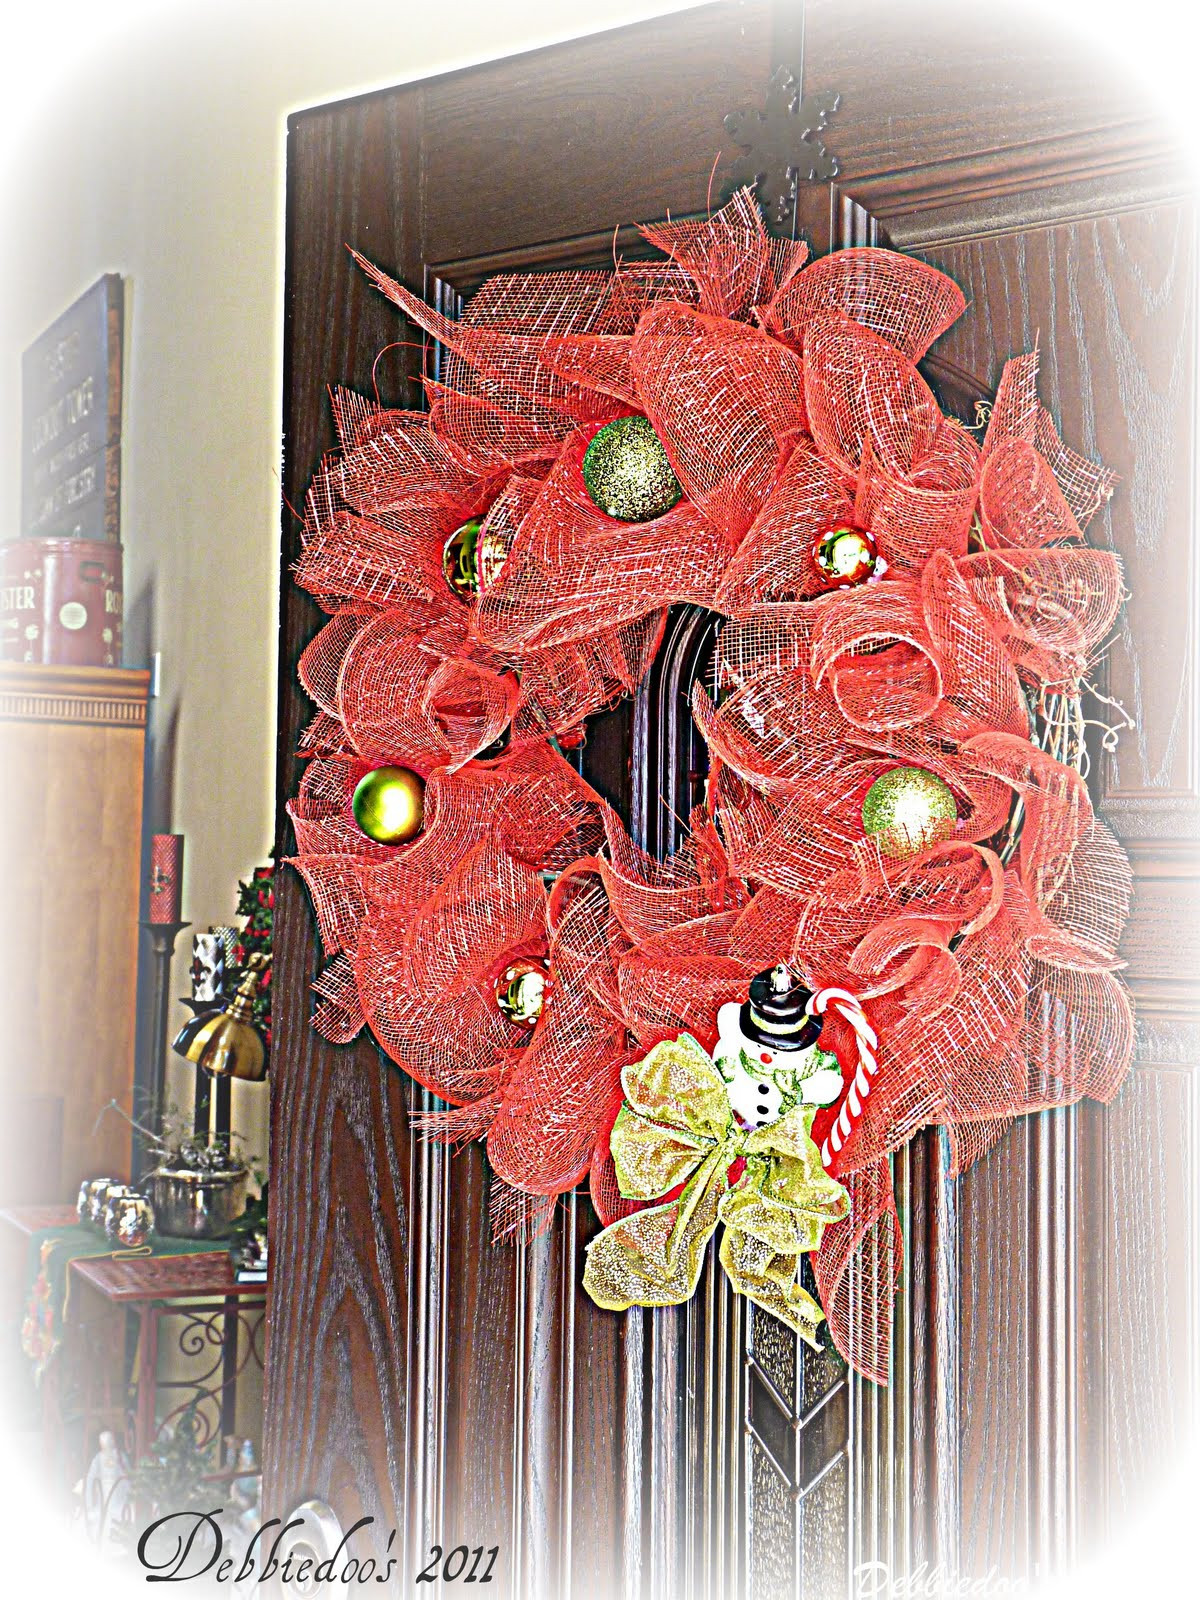 Best ideas about DIY Mesh Christmas Wreath . Save or Pin Mesh Christmas Wreath on the Front door diy Debbiedoos Now.